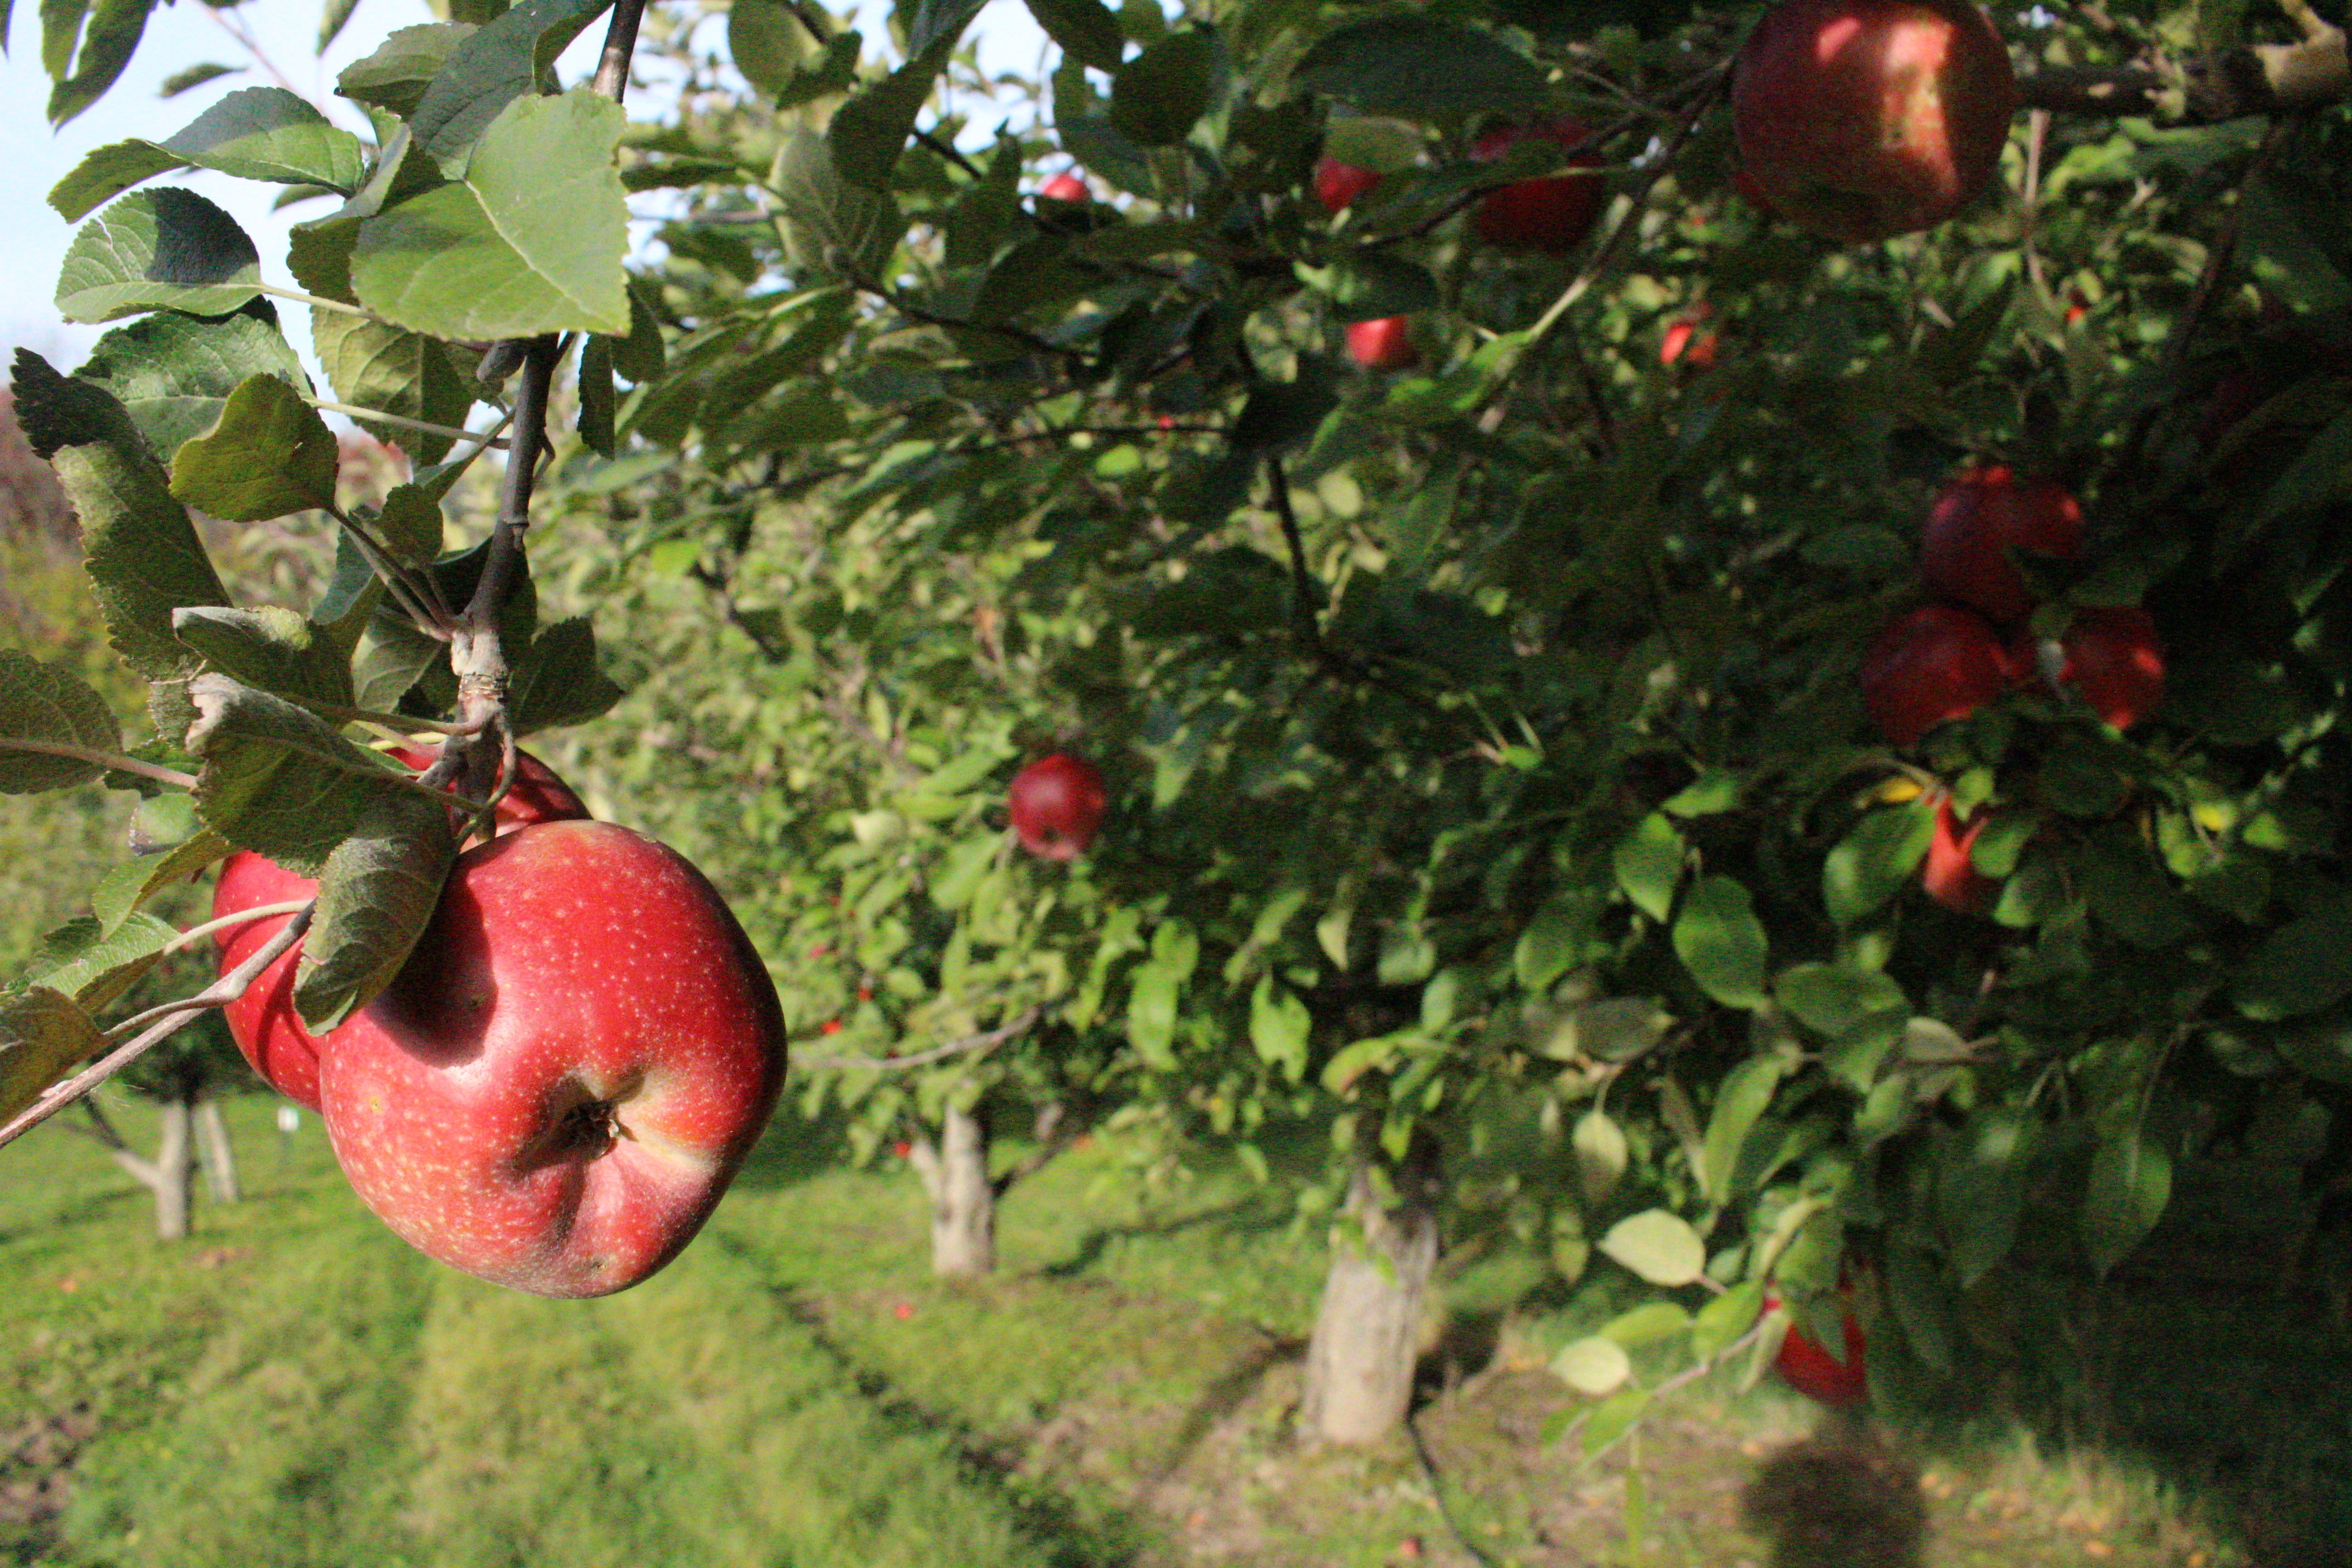 Apple orchards perfect place to enjoy cooling autumn weather